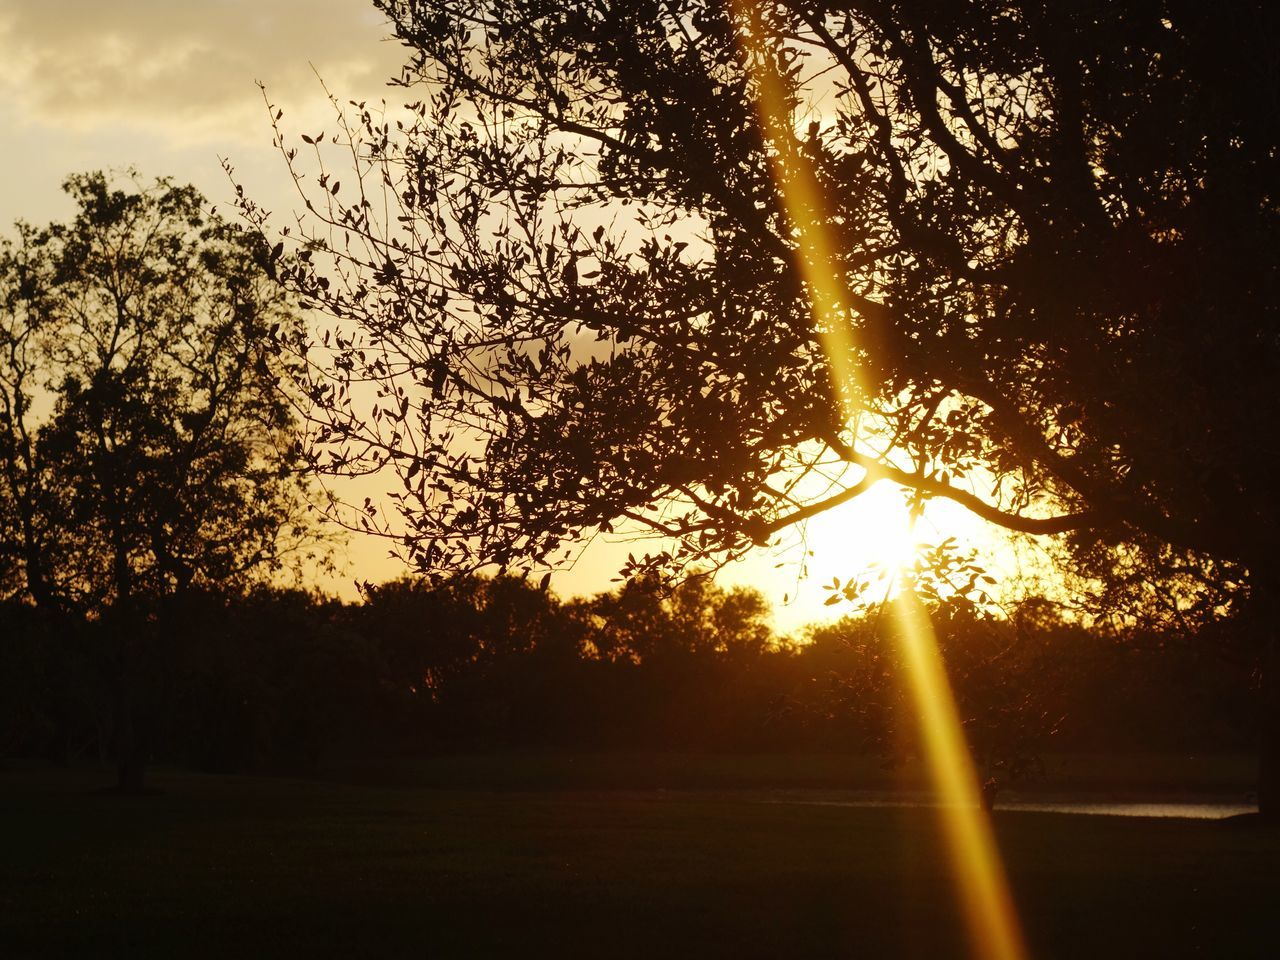 Sunset Tree Sun Nature Sunlight Silhouette No People Beauty In Nature Sky Outdoors Day